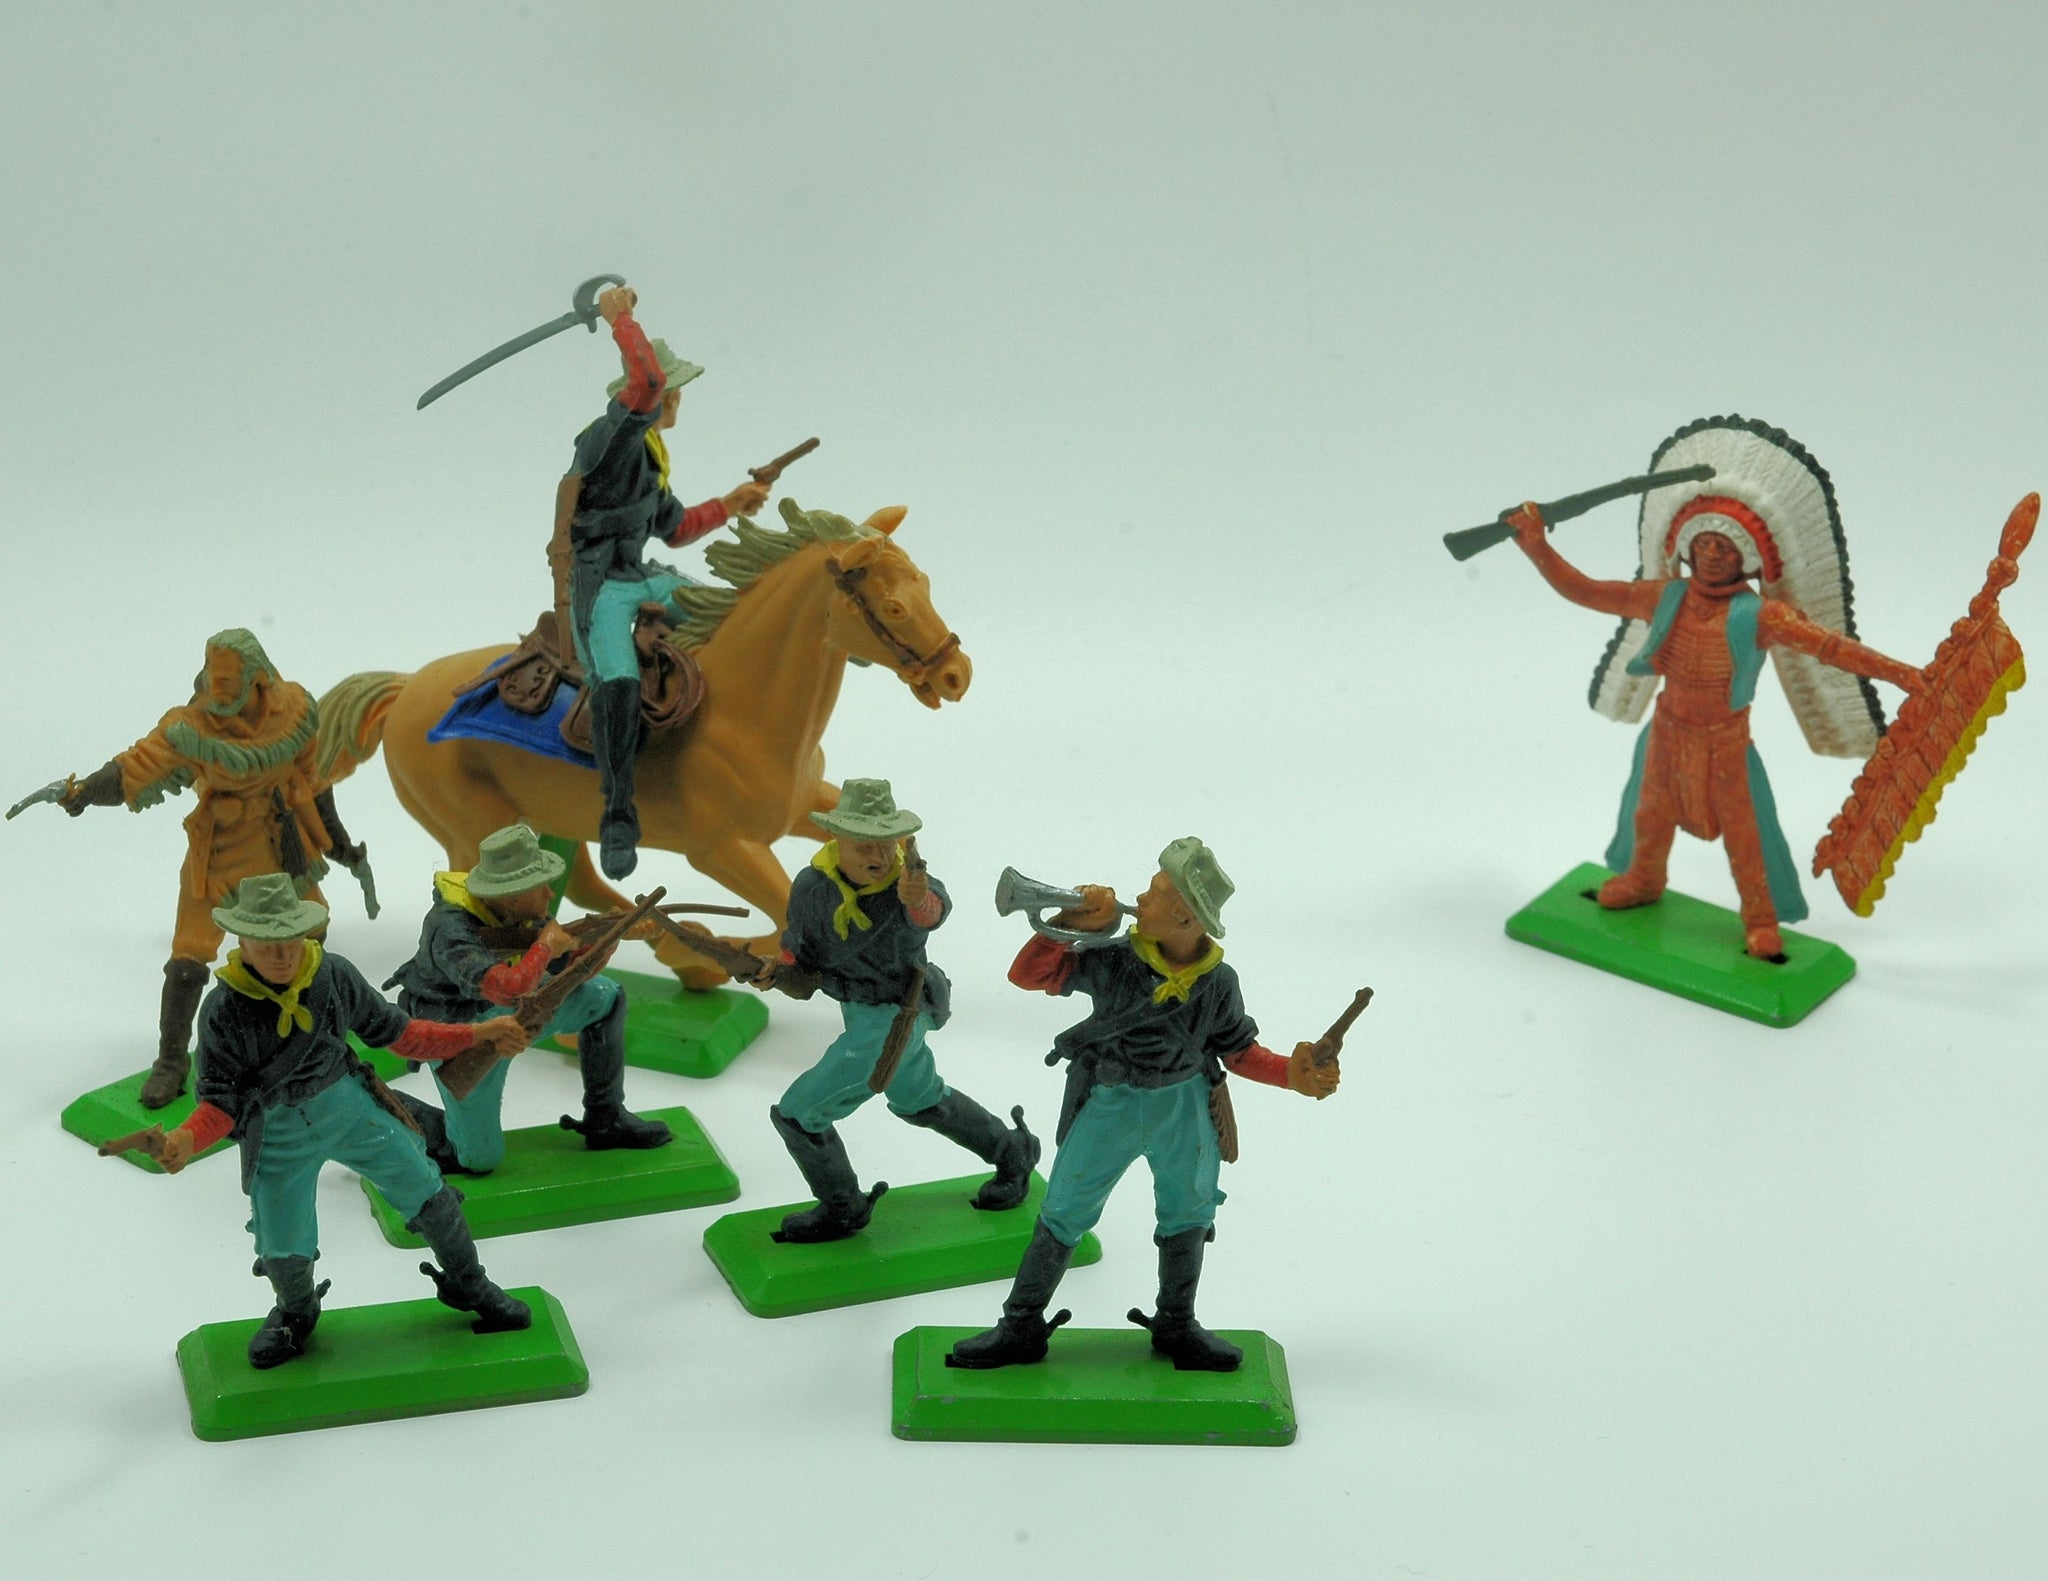 Vintage Action Figures Cowboys and Indians by Deetail